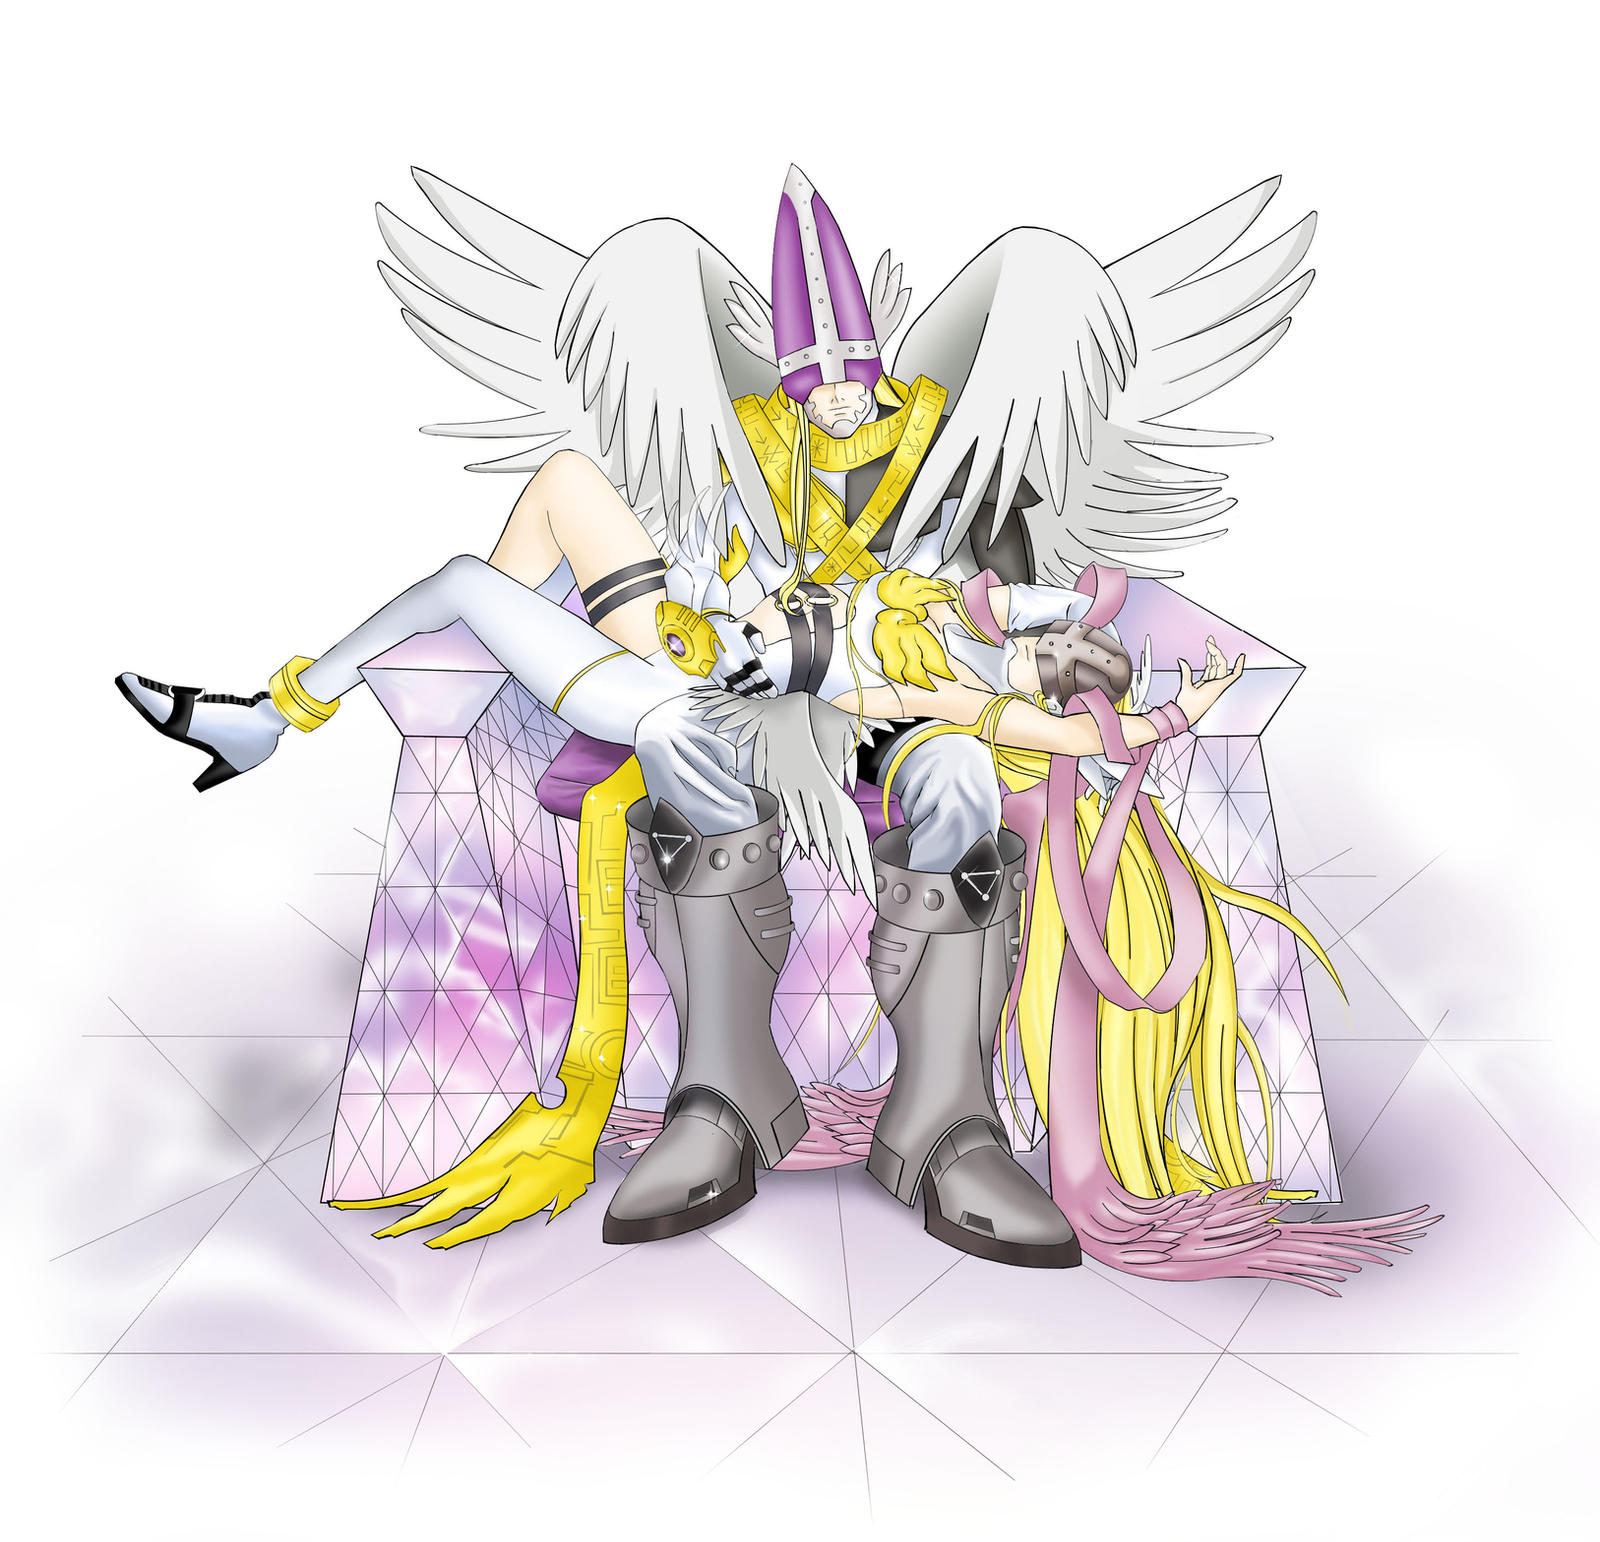 Holy Angemon and Angewomon by Ayhe on DeviantArt